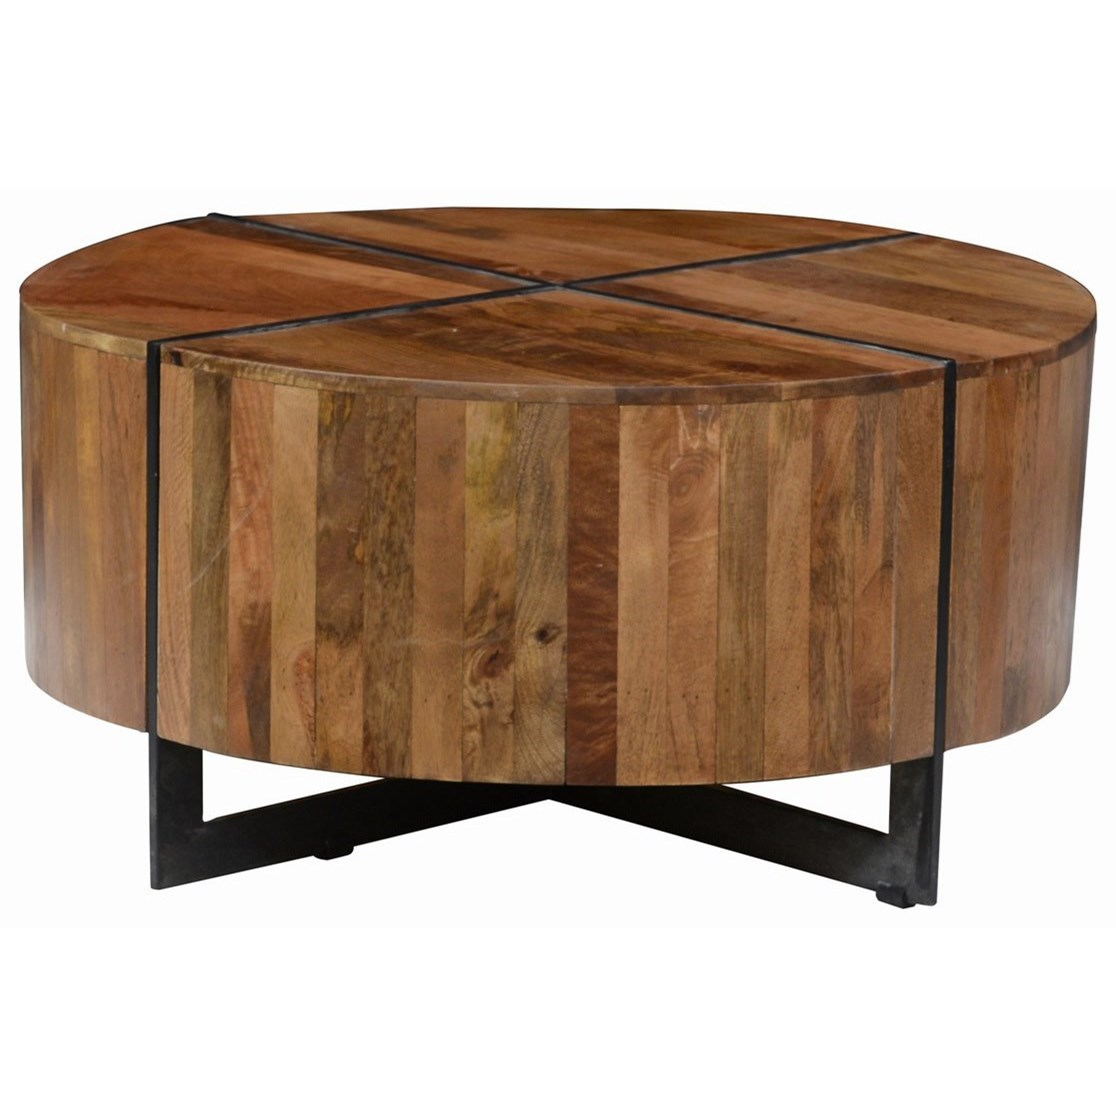 Classic home desmond round mango wood coffee table with for Classic home tables